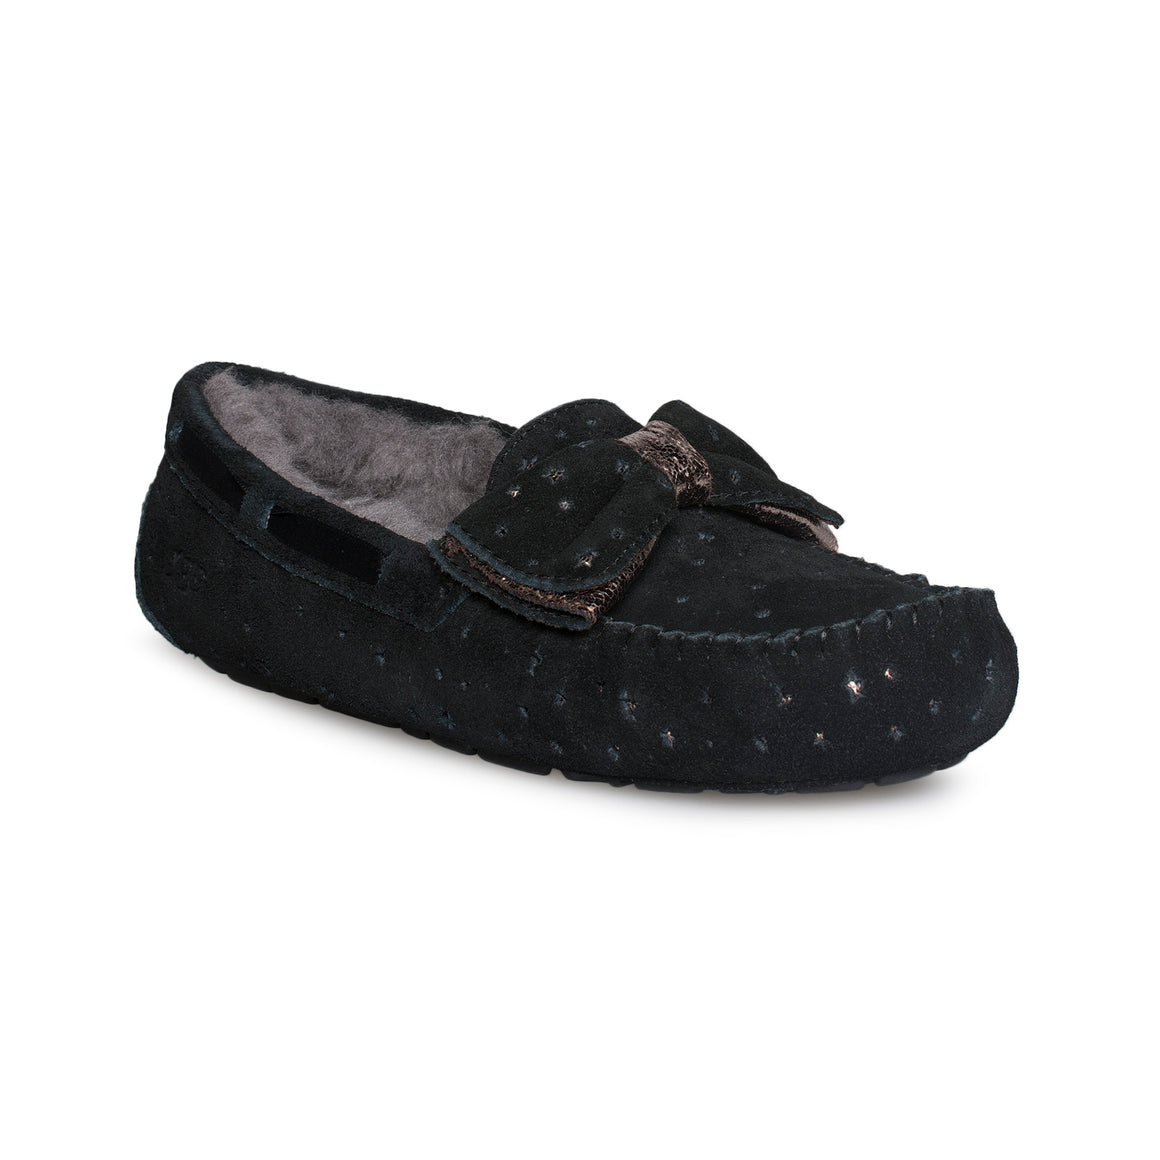 UGG Dakota Stargirl Black Slippers - Women's